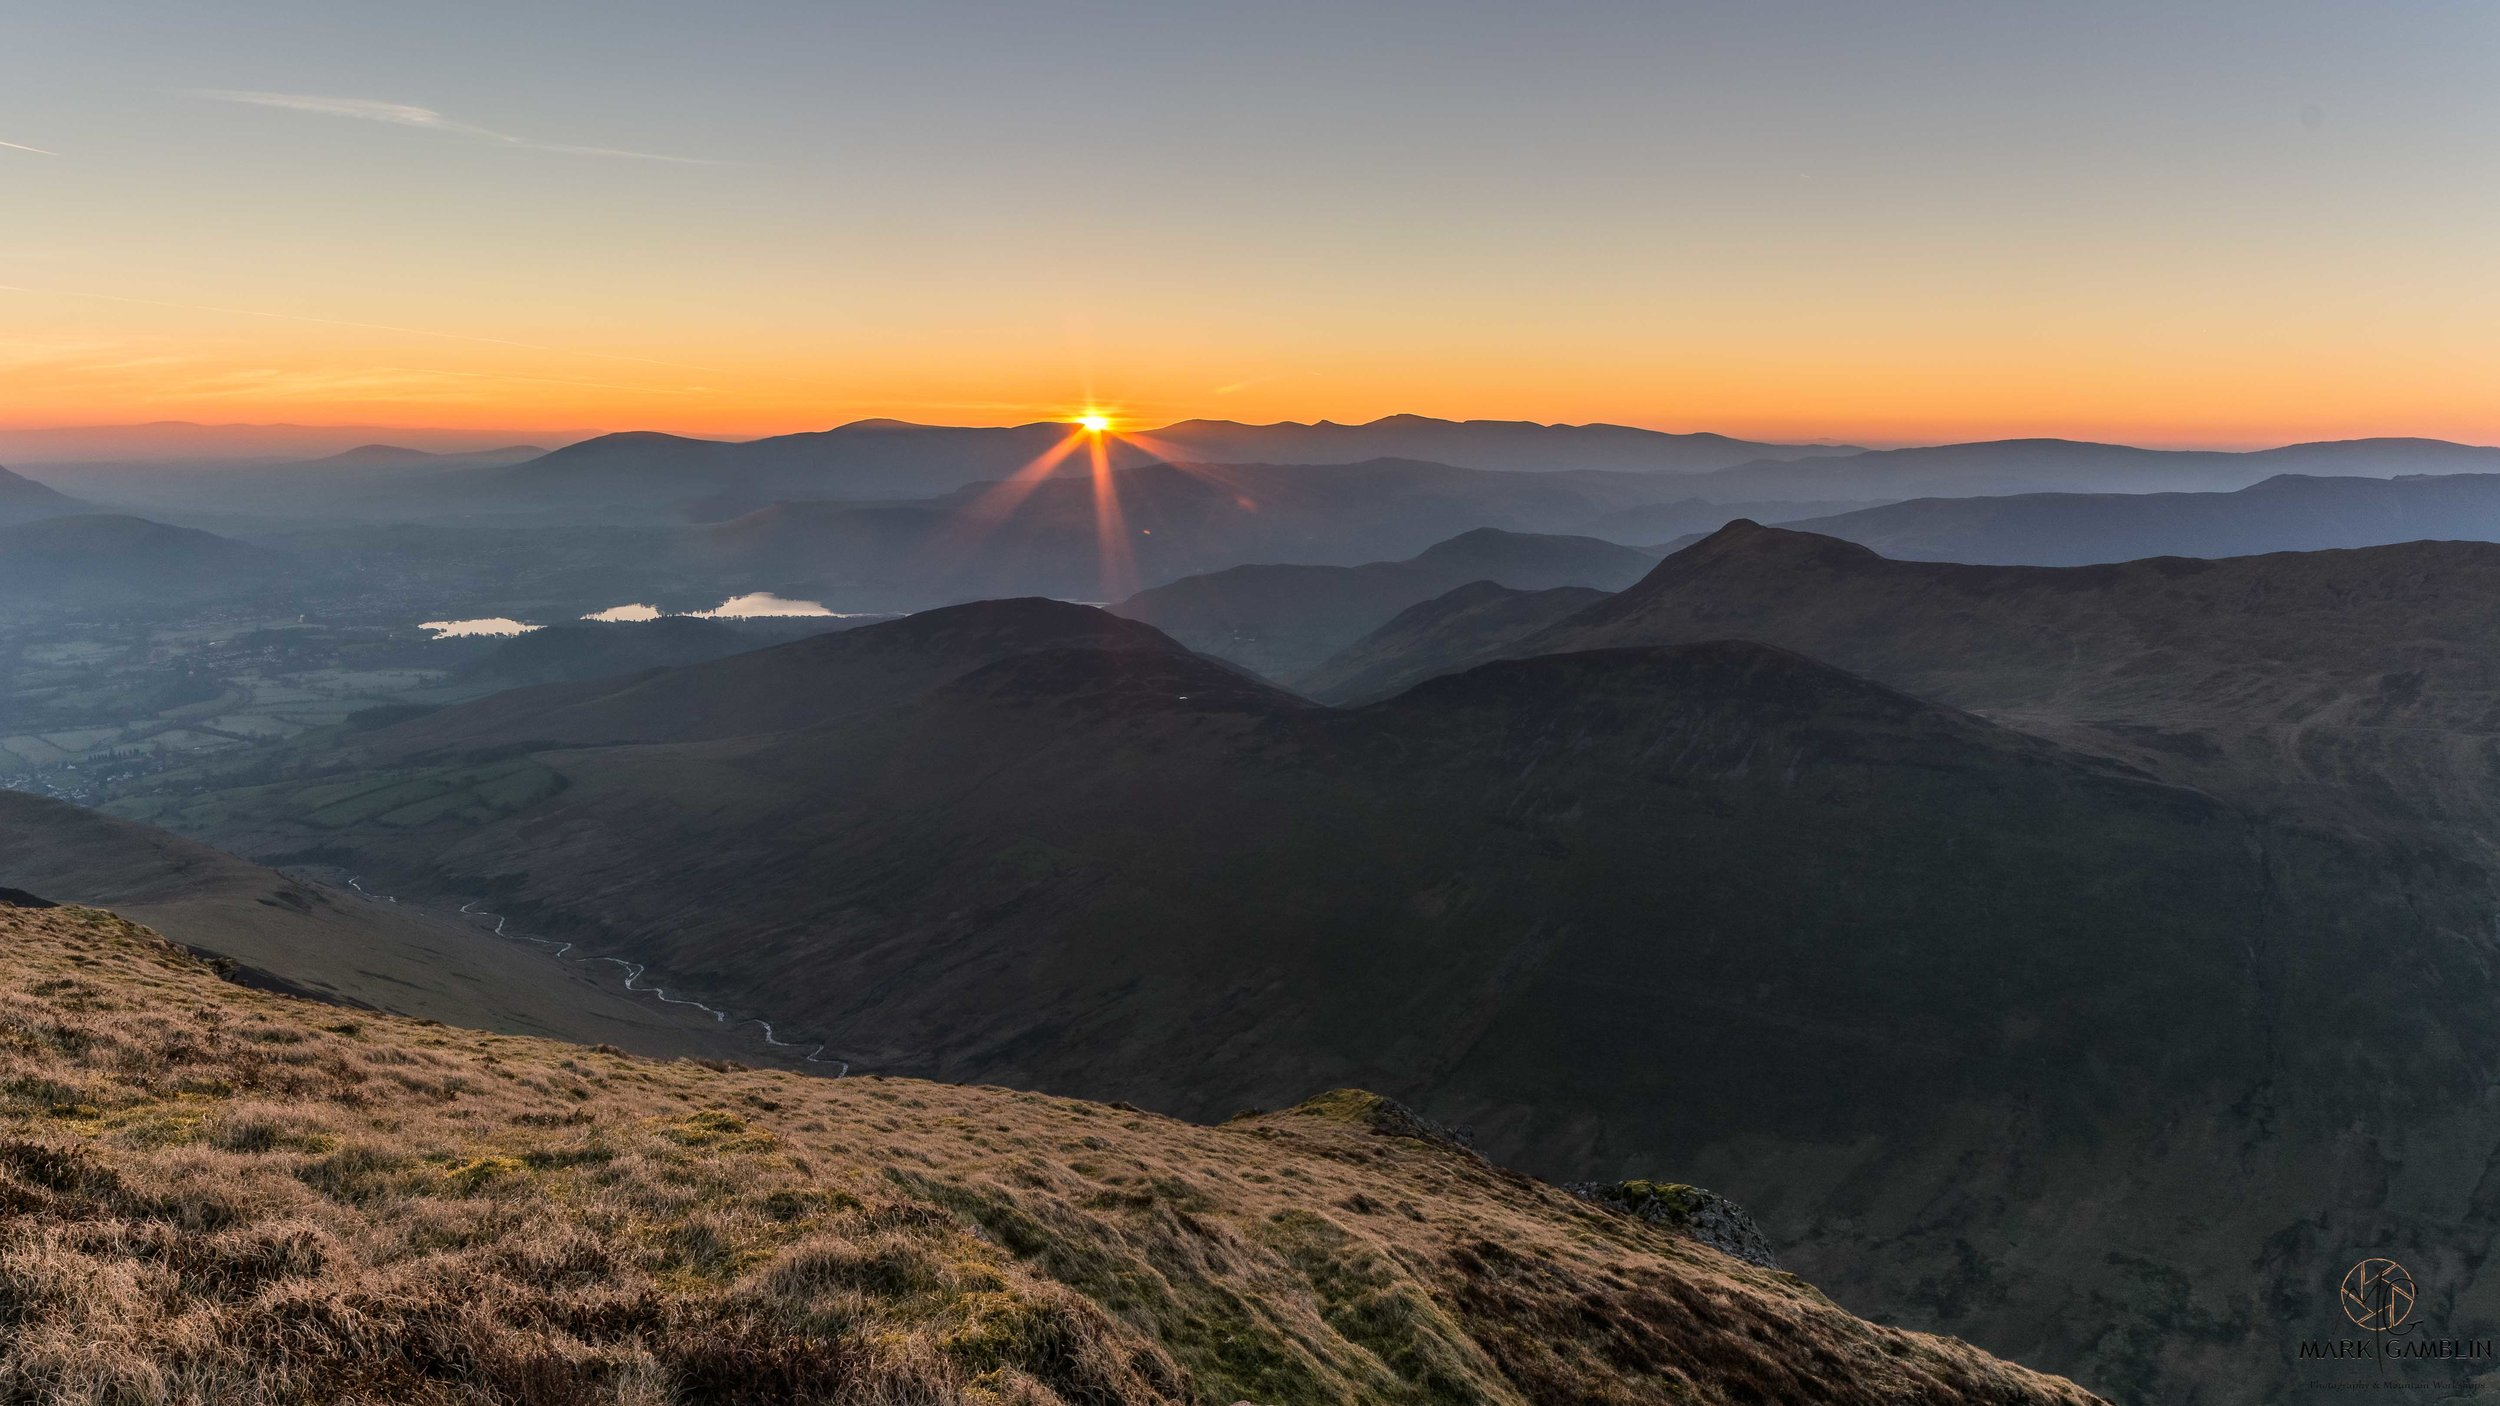 date to be confirmed -Grisedale pike sunrise photo walk - Have you ever wanted to watch the sunrise from the top of a mountain in the Lake District? Join me on a guided sunrise photo walk to the top of one the greatest fells in the Lakes. With stunning panoramic views, Grisedale Pike is the perfect setting for a stunning Lakeland sunrise£30 per person